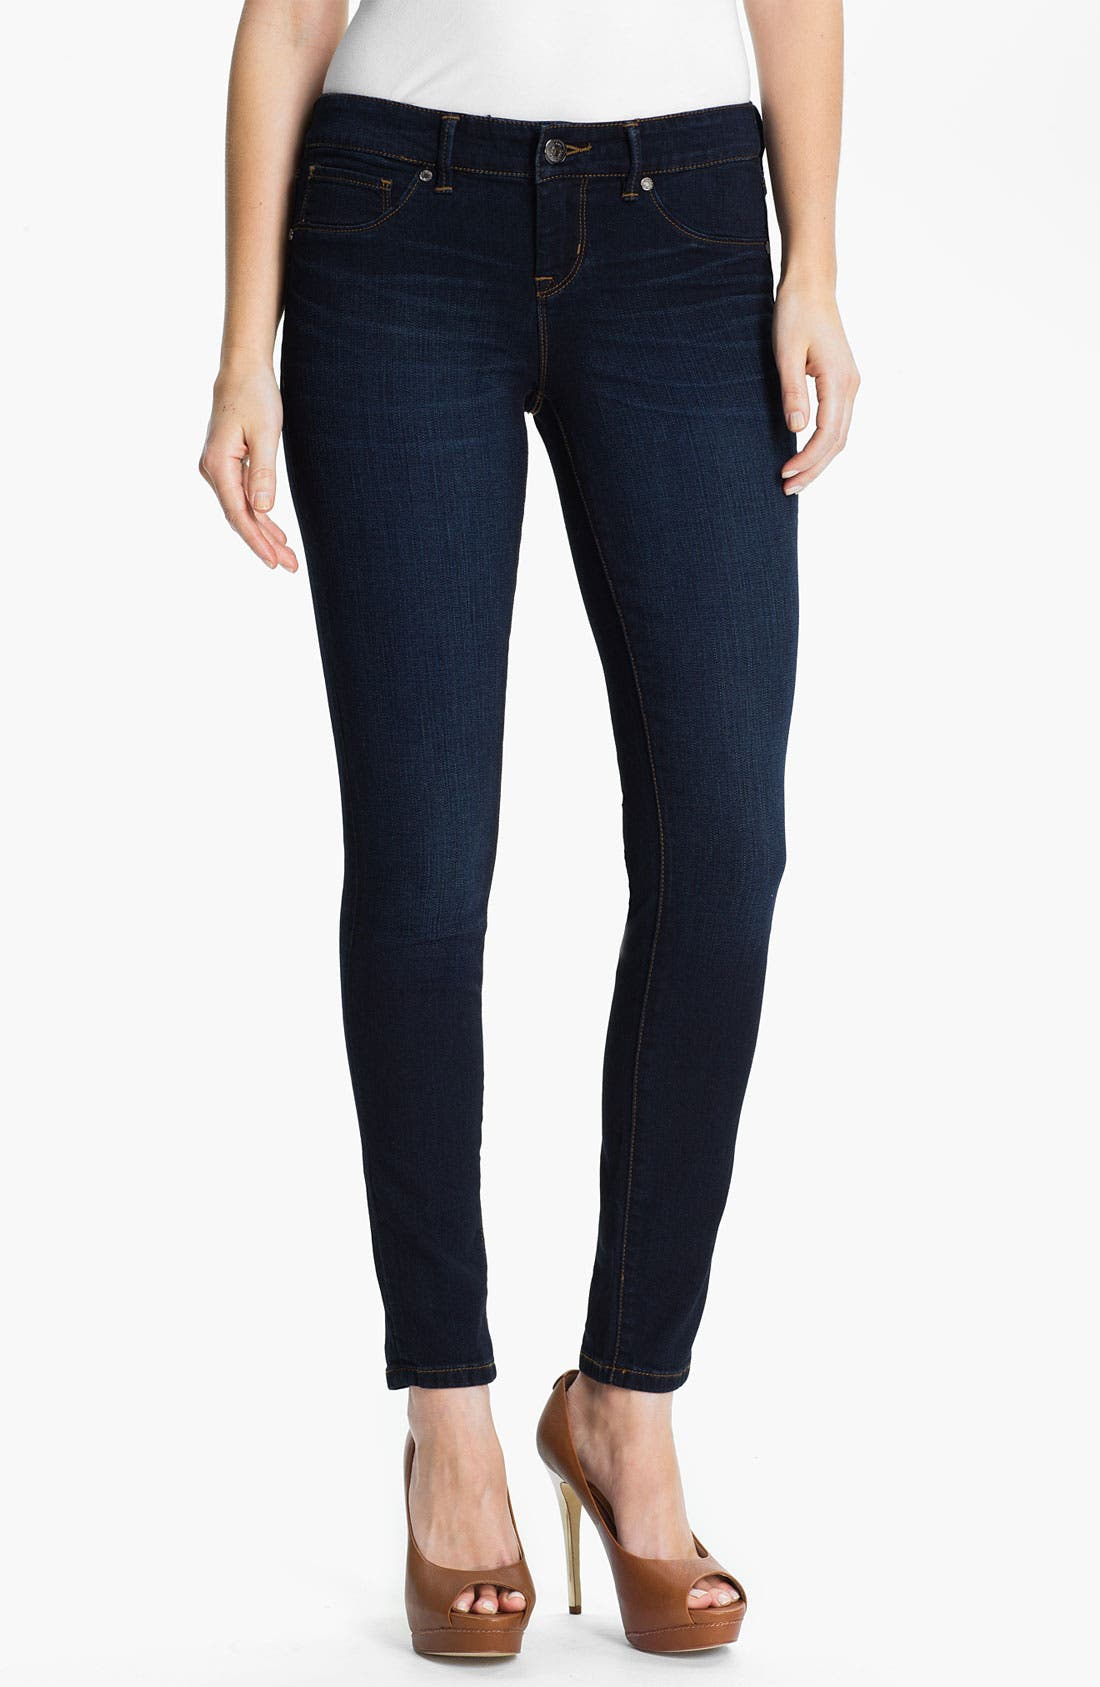 Alternate Image 1 Selected - Isaac Mizrahi Jeans 'Kendall' Denim Leggings